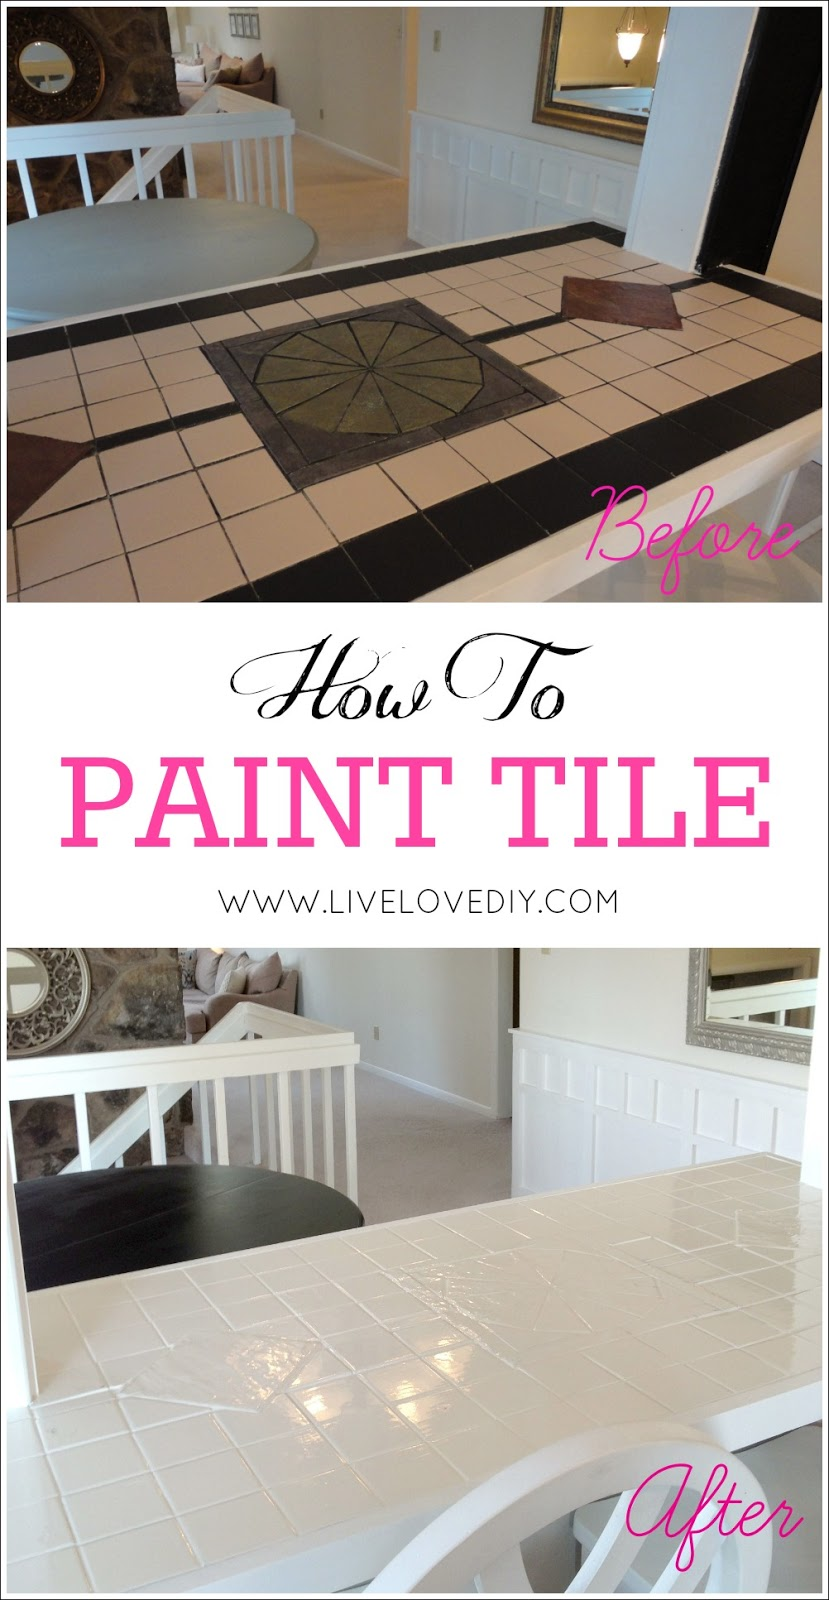 Livelovediy how to paint tile countertops for Can you paint granite countertops